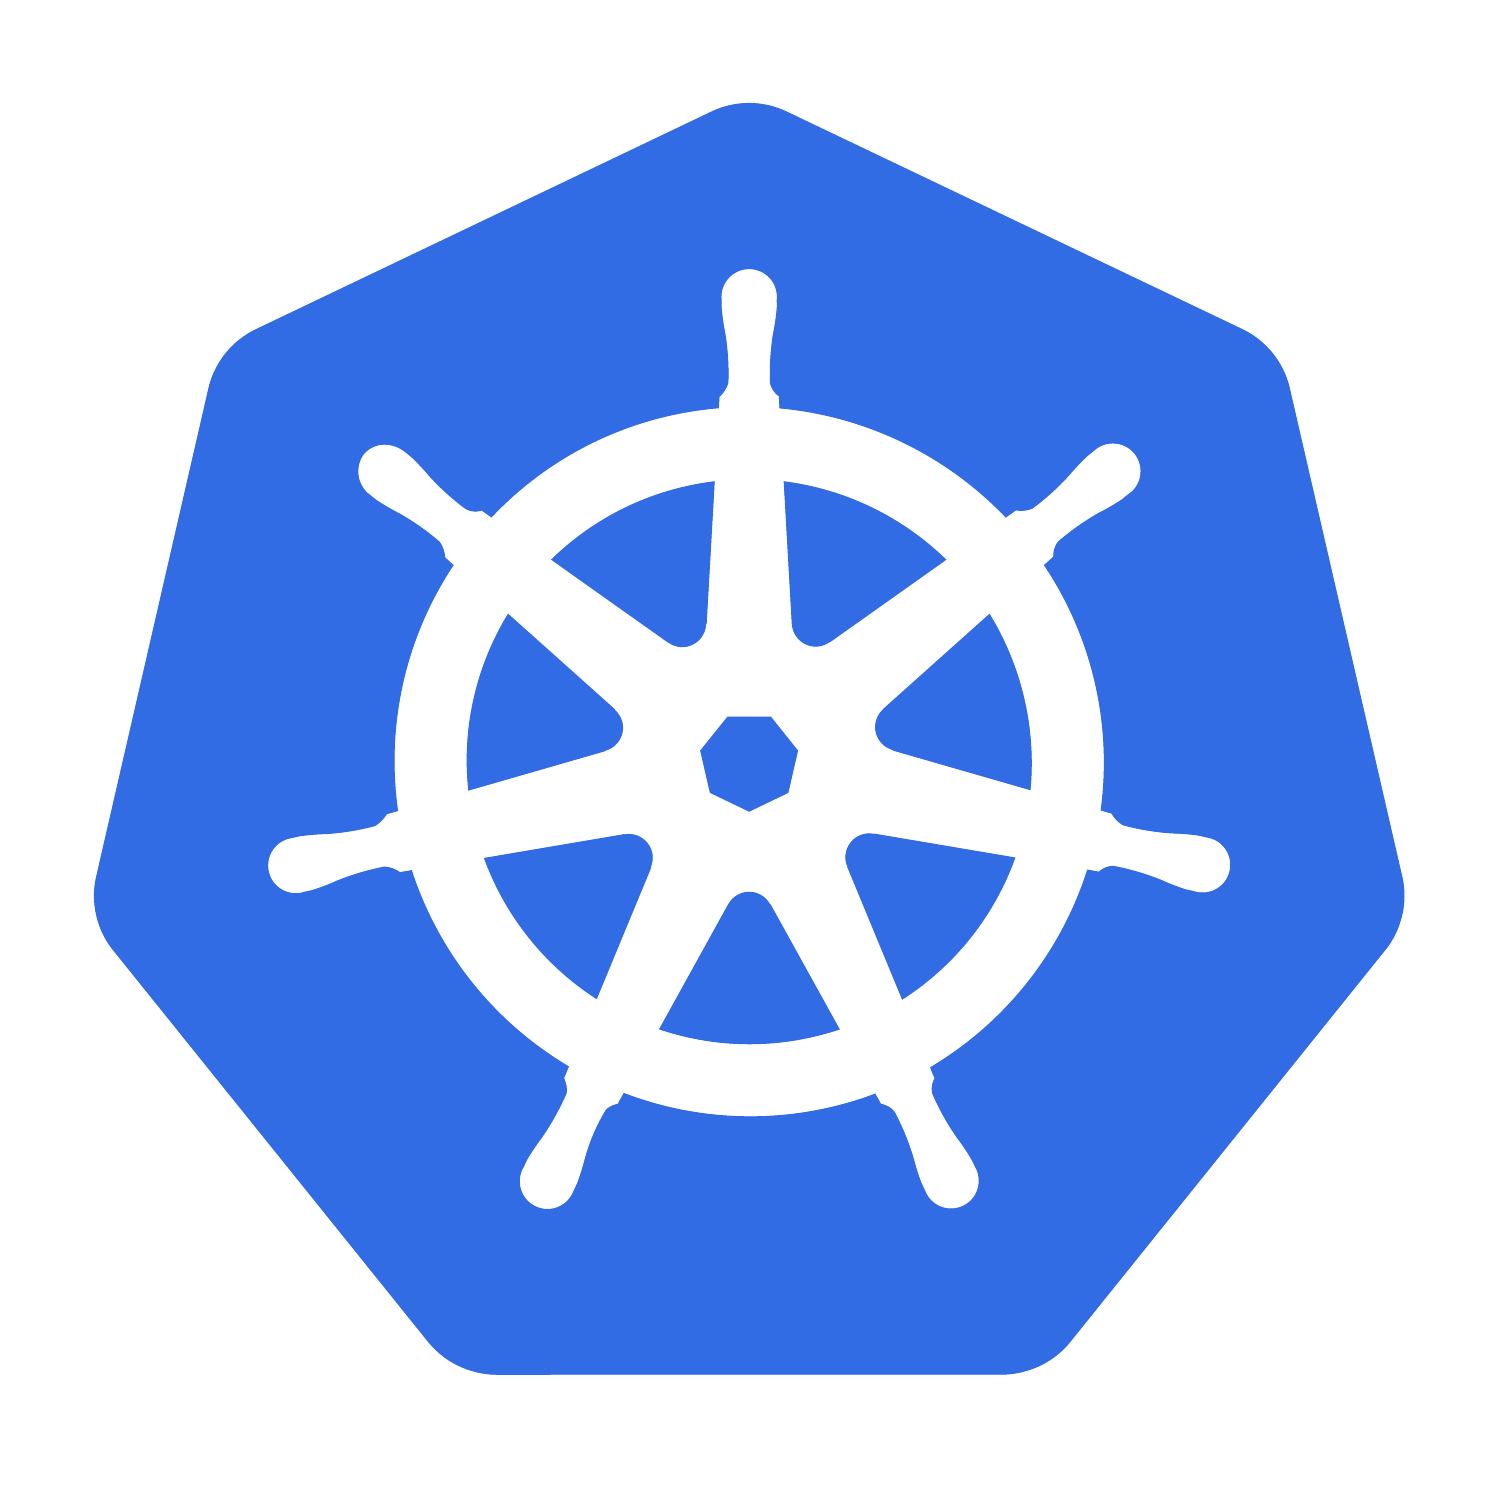 kubernetes-icon-color